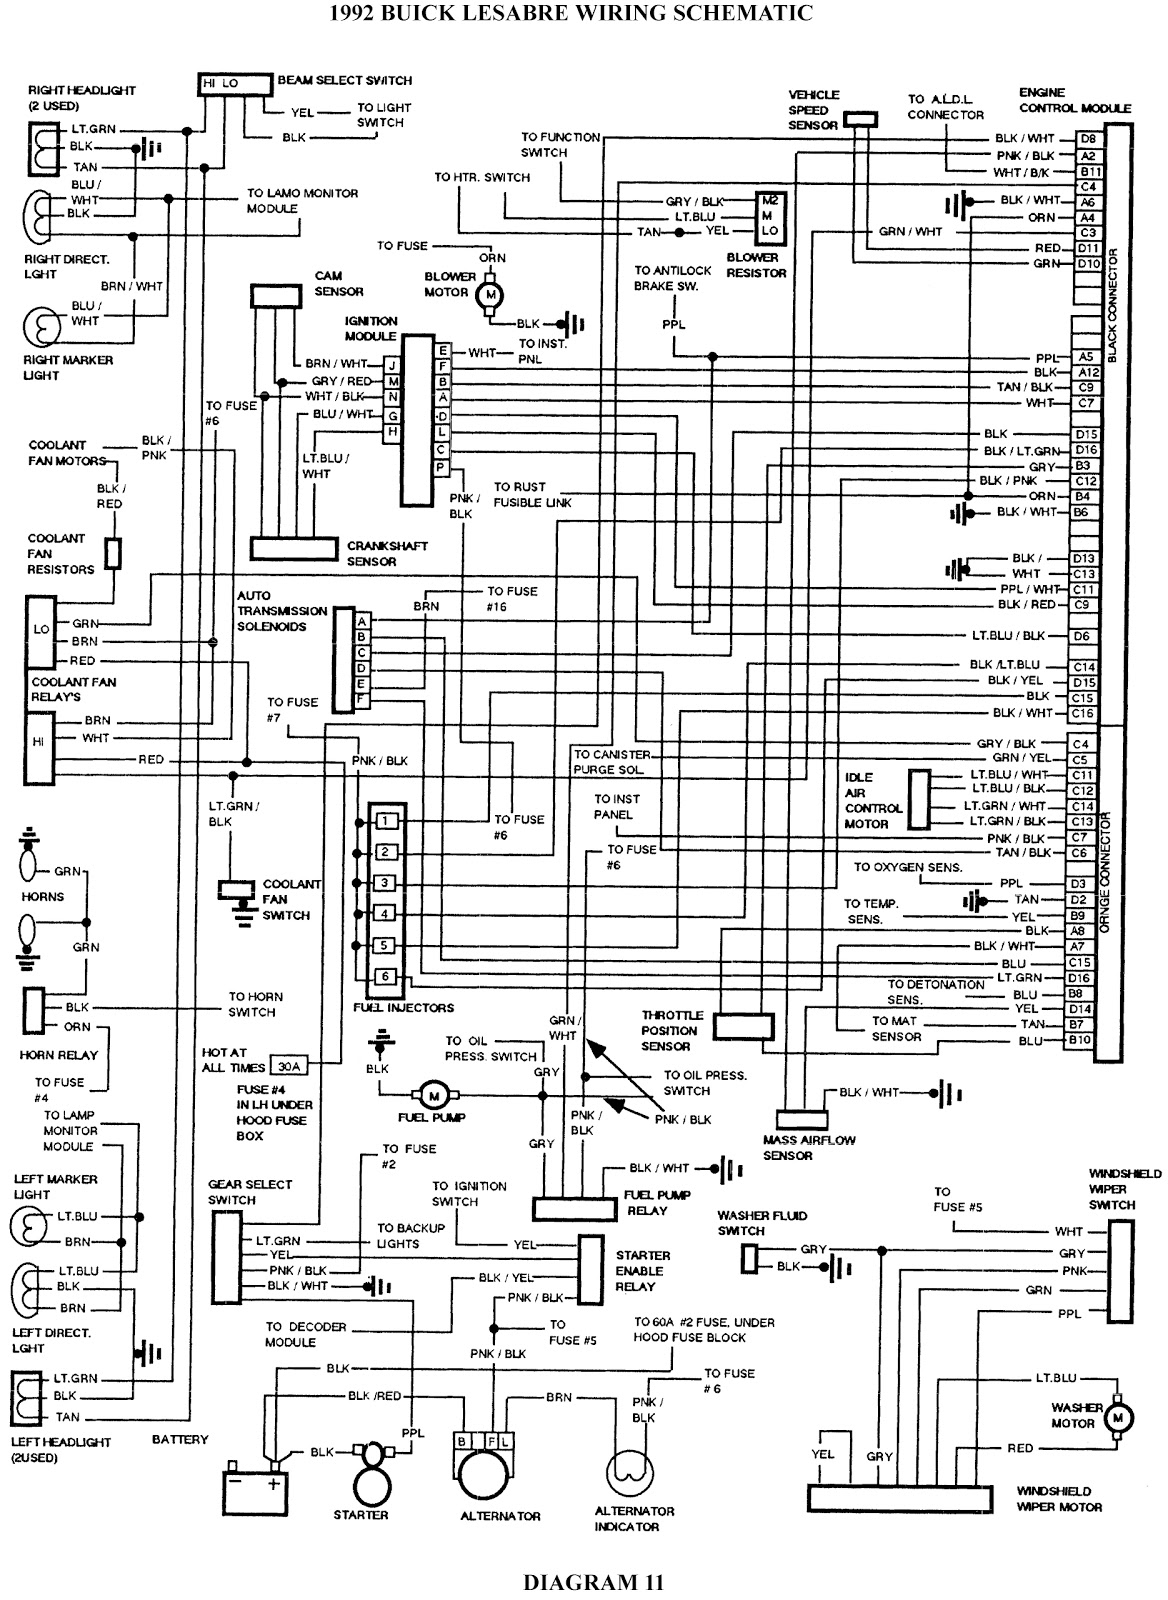 1991 buick roadmaster wiring diagram wiring diagram portal wiring diagram for 2004 buick regal 1993 buick [ 1168 x 1600 Pixel ]